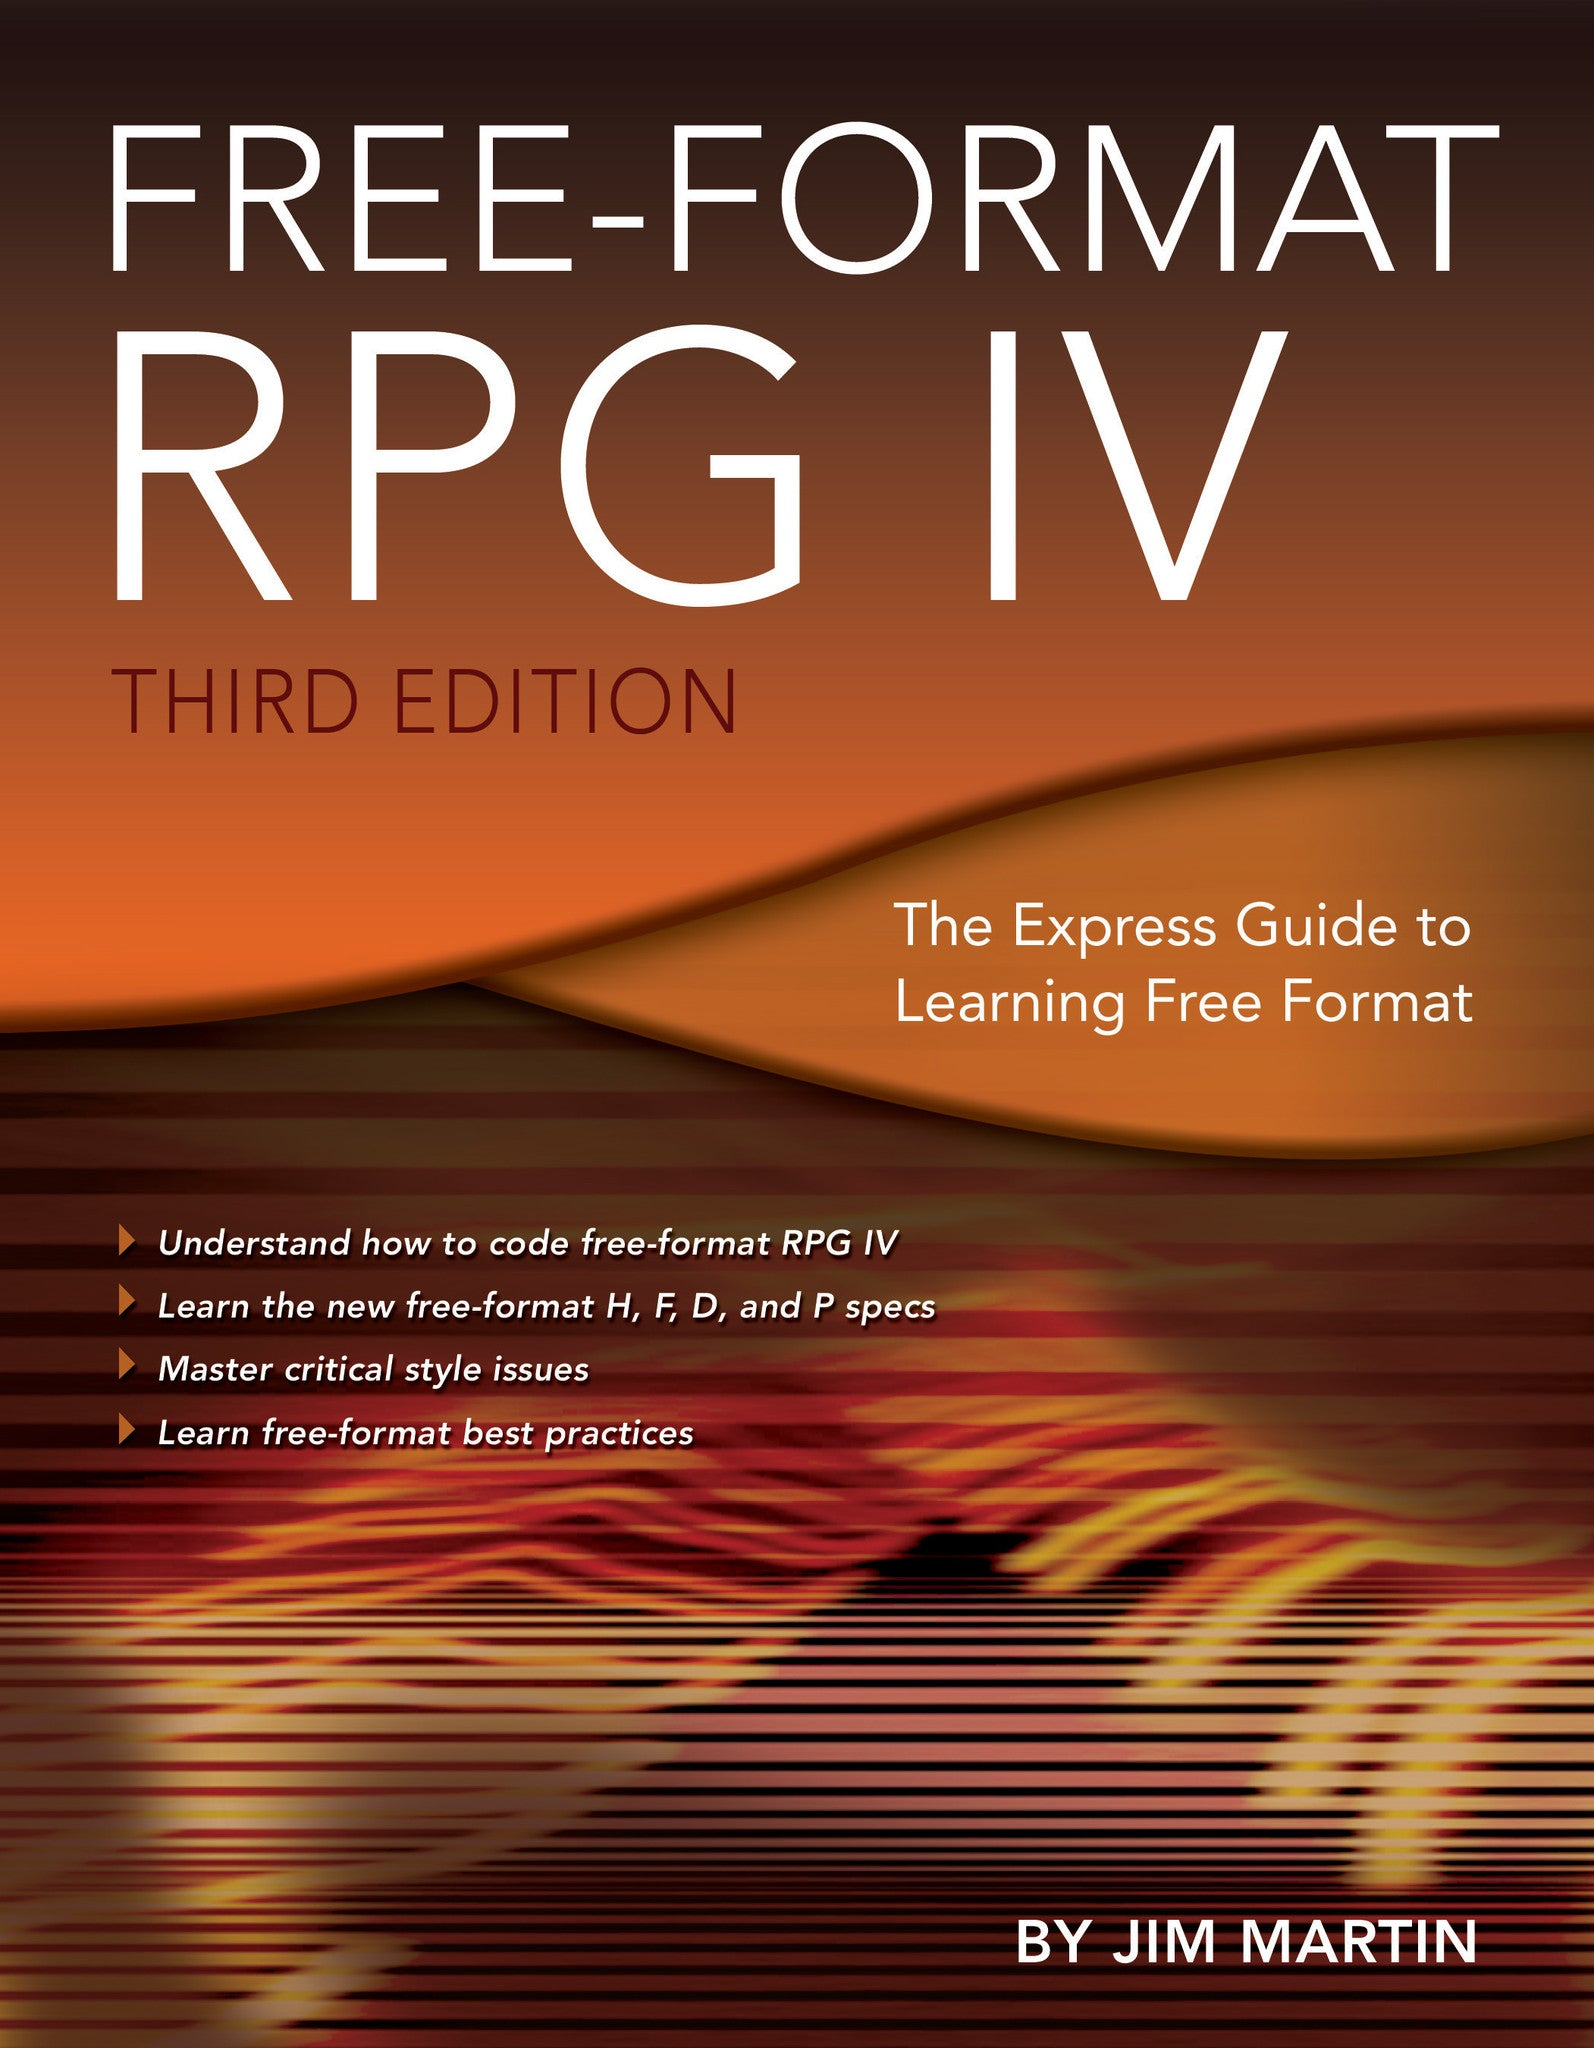 Freeformat Rpg Iv: Third Edition Jim Martin